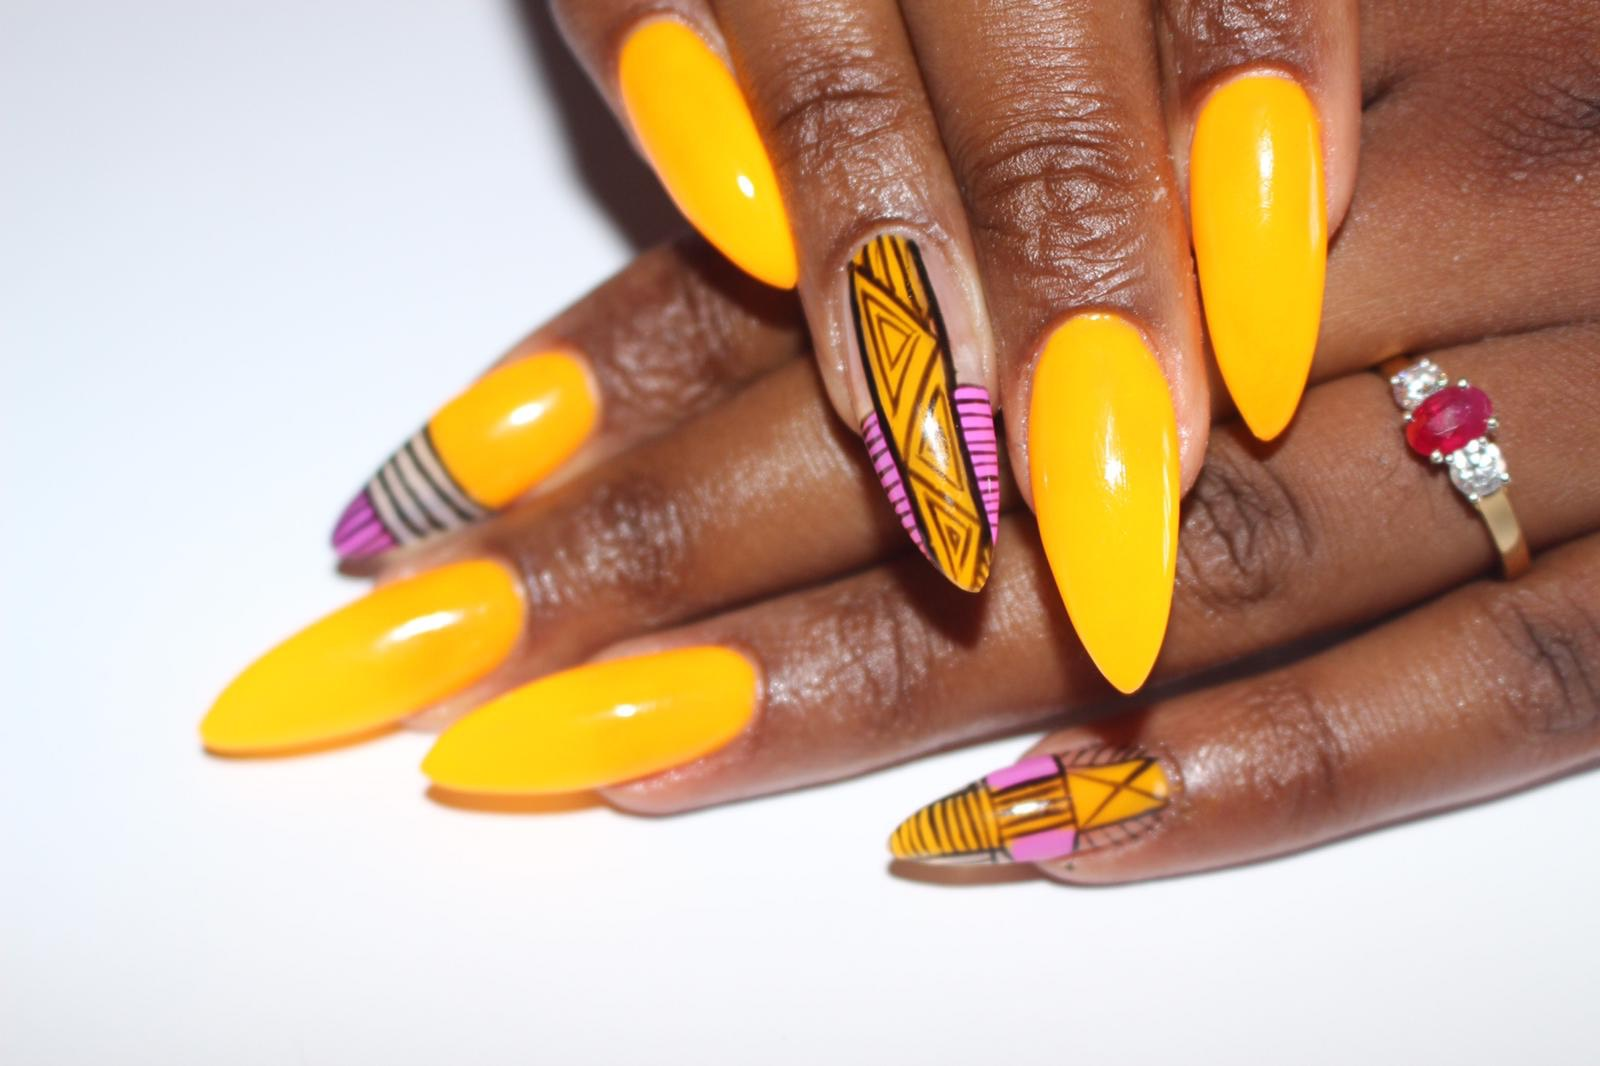 Nails by Michelle Duberry